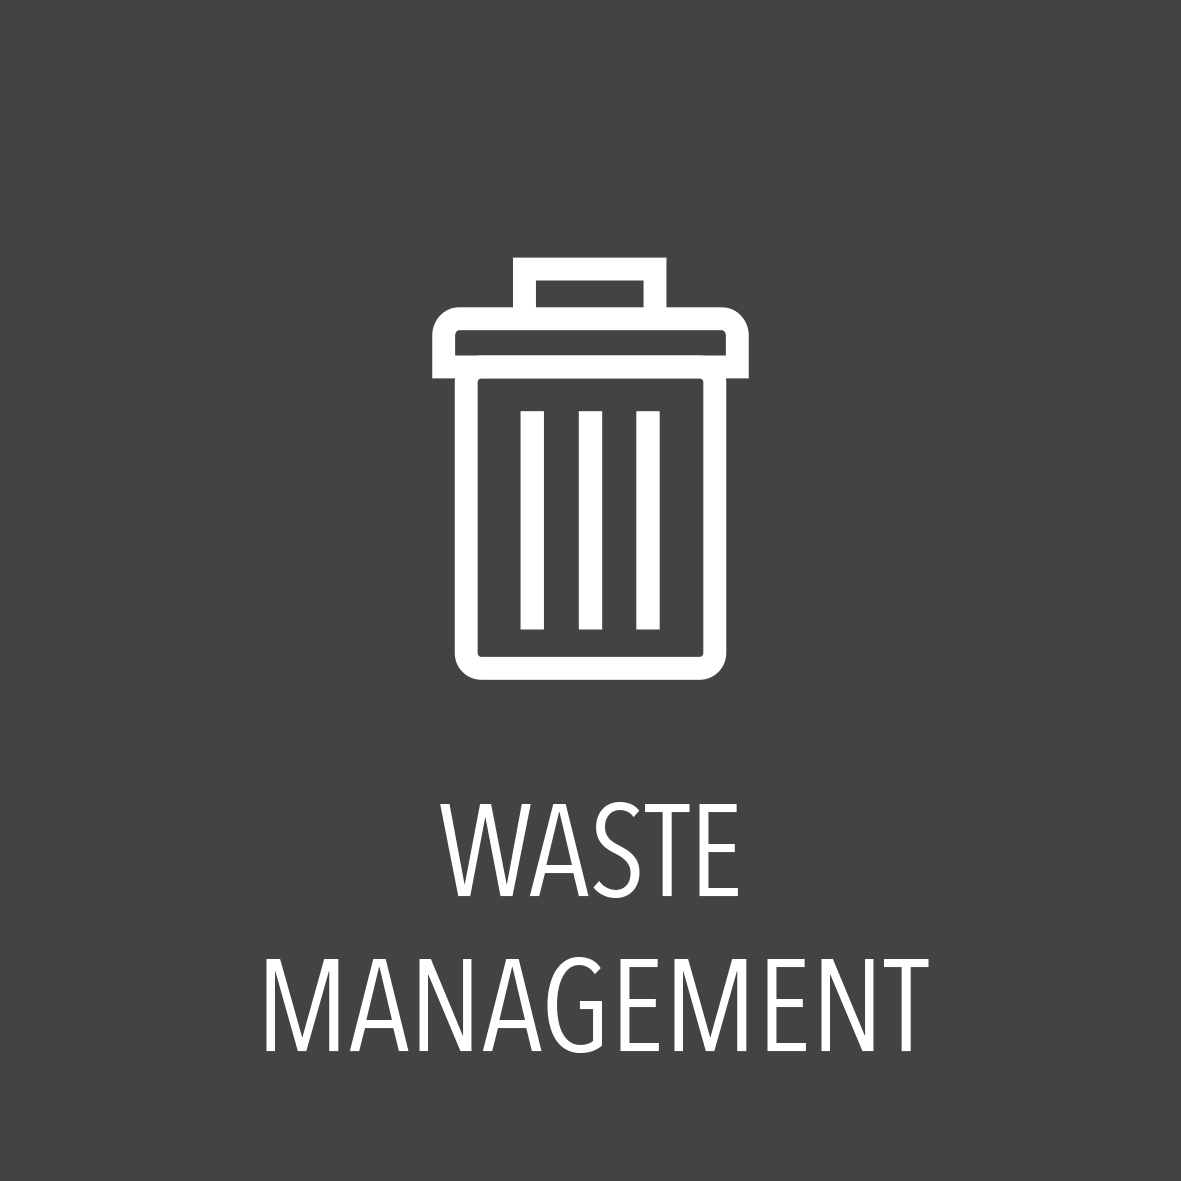 Identify waste origins and make savings